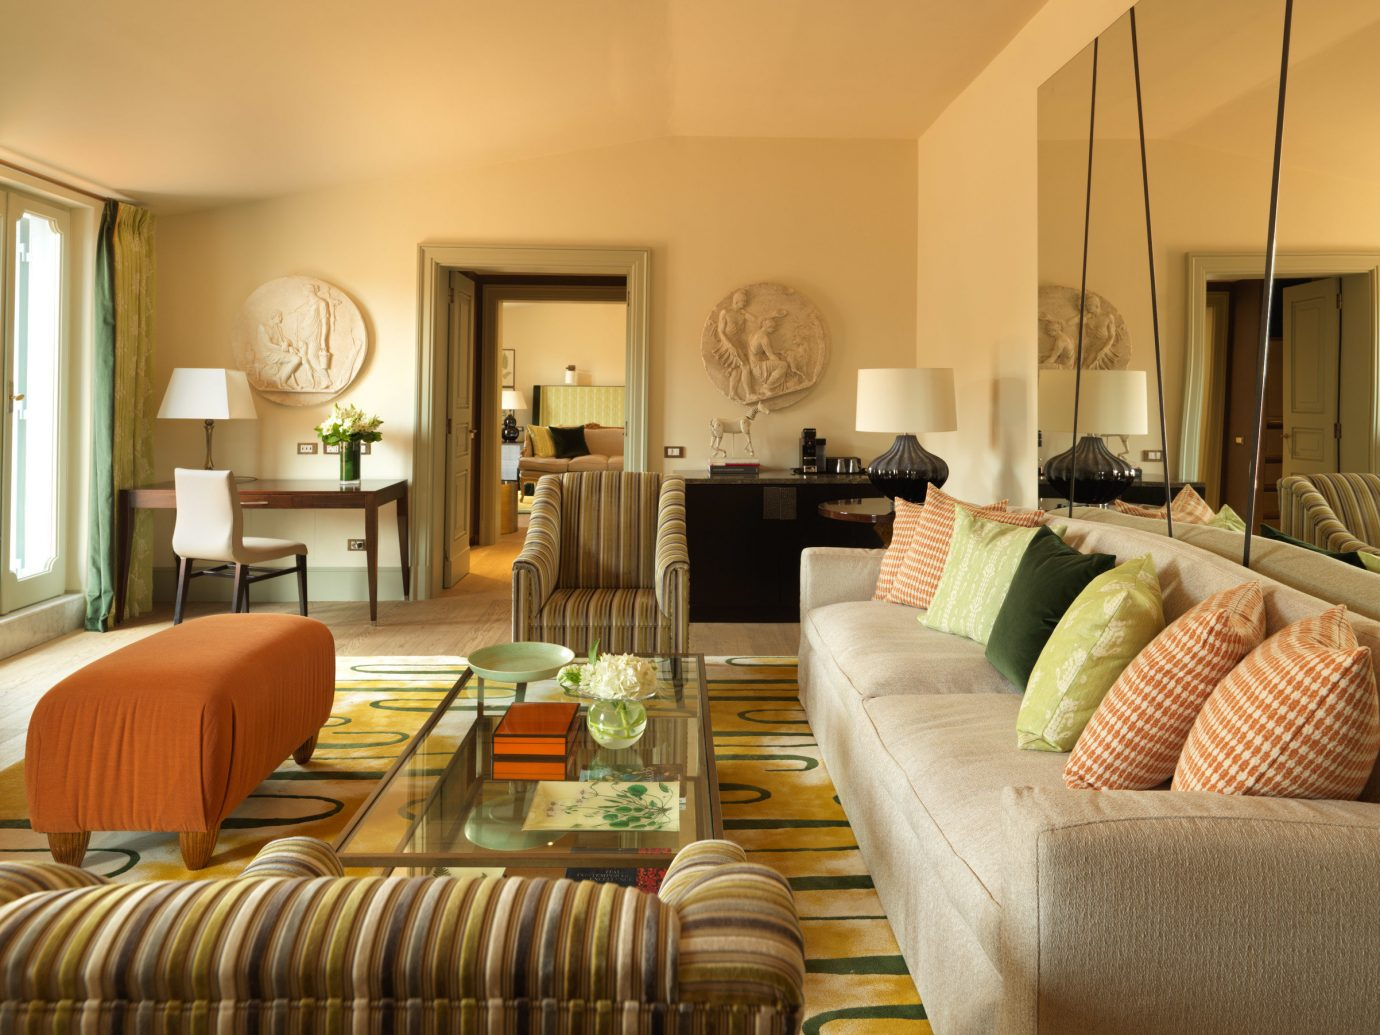 Boutique Hotels Italy Luxury Travel Romantic Hotels Rome sofa Living indoor room wall floor living room property furniture estate home Suite interior design real estate condominium cottage Villa decorated area flat leather